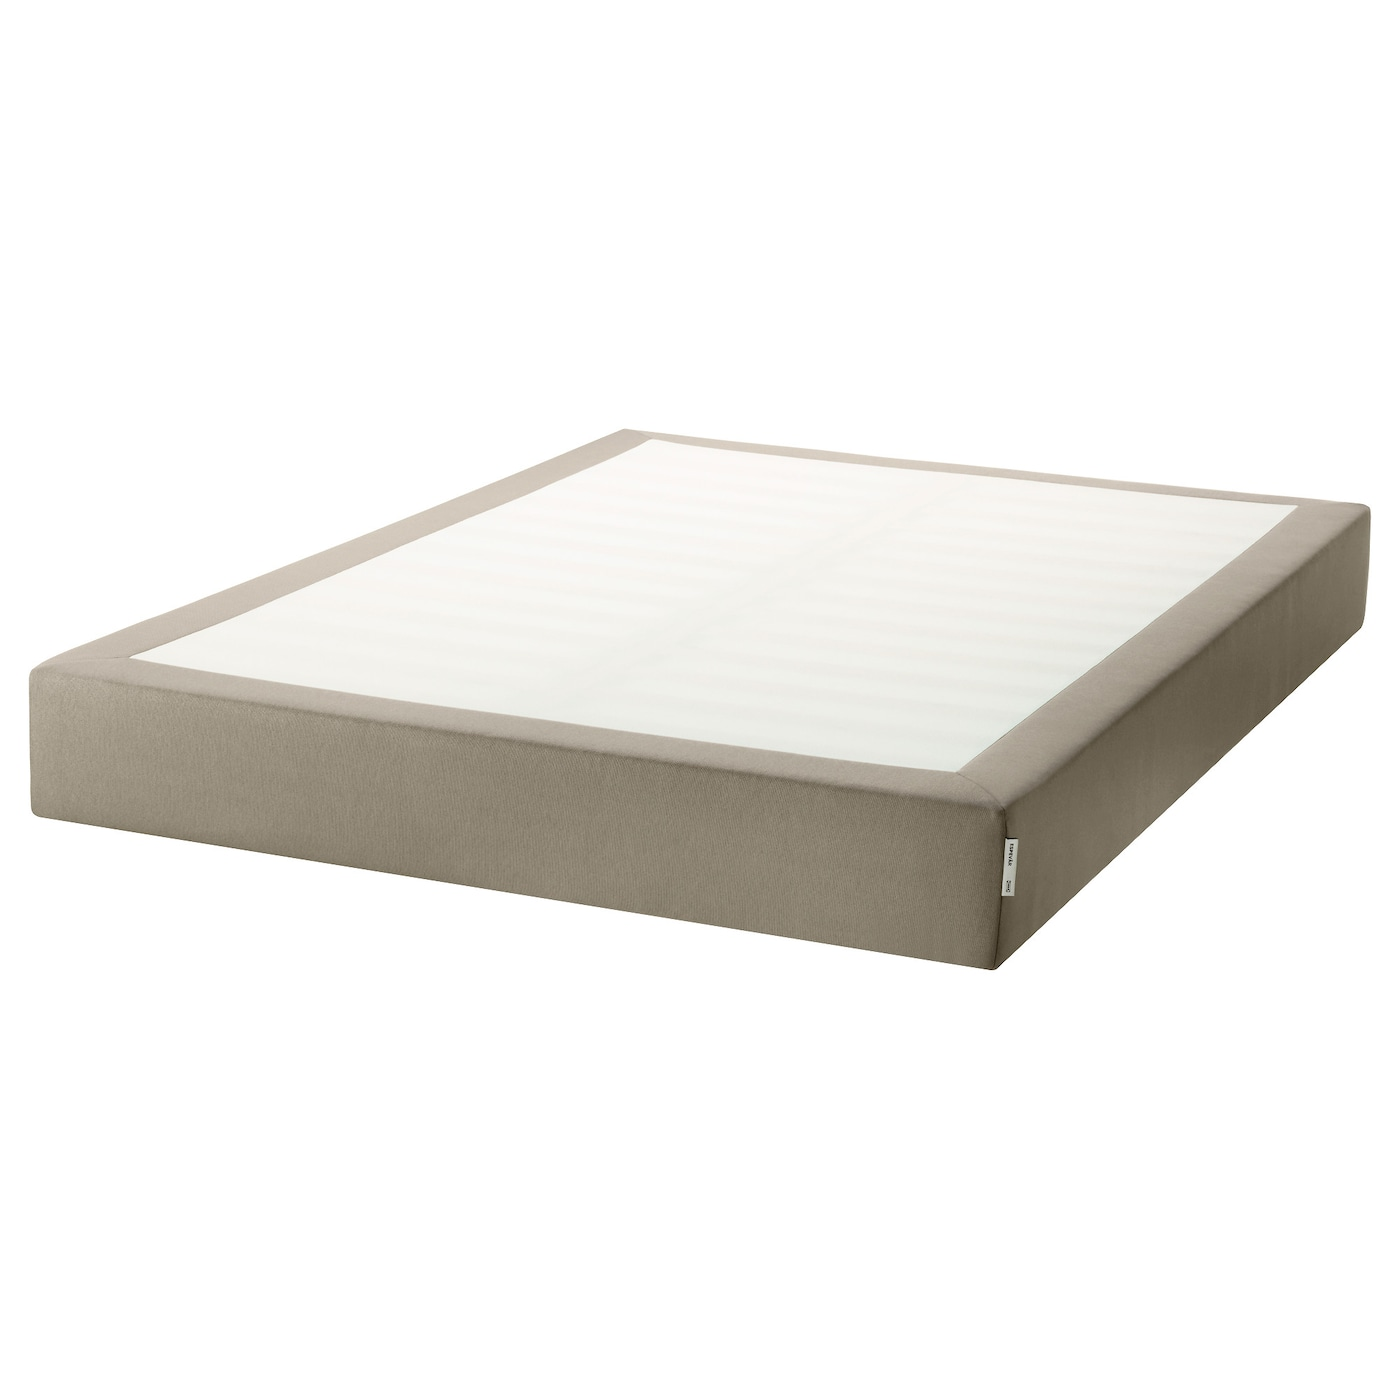 hamarvik matelas ressorts mi ferme beige fonc 140x200 cm ikea. Black Bedroom Furniture Sets. Home Design Ideas